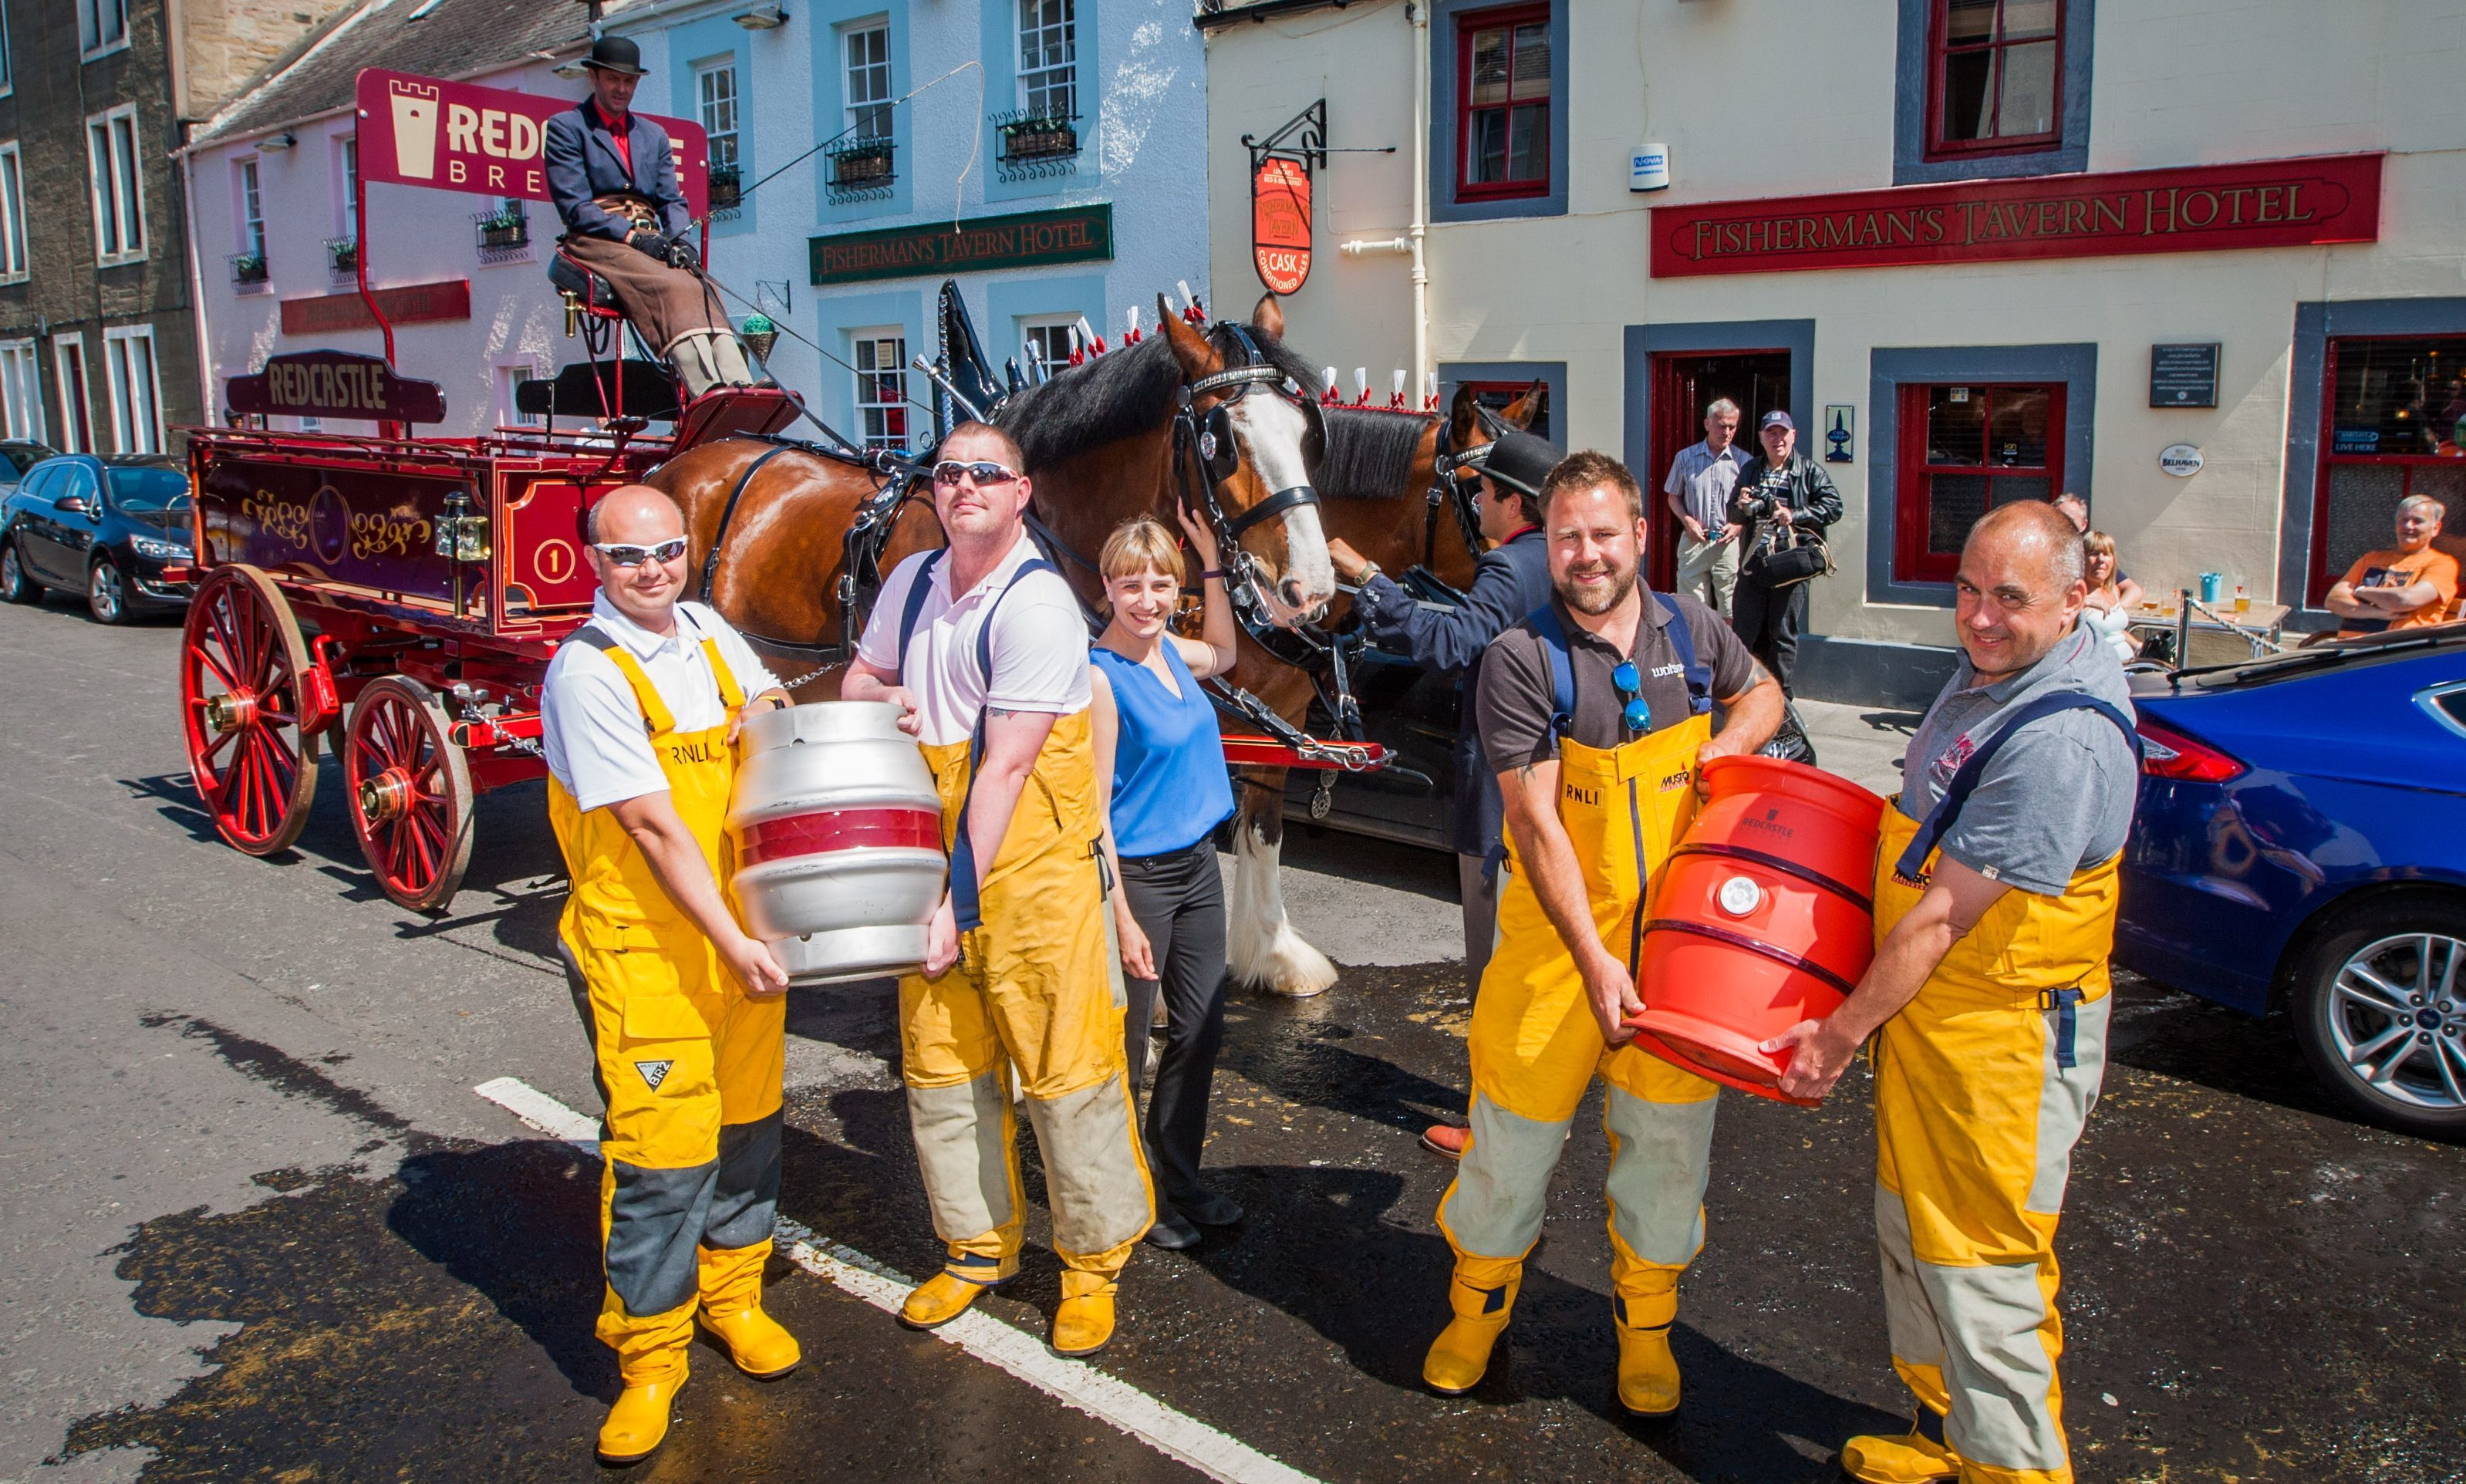 Fisherman's Tavern manager Halina McAllister (centre) with (from left) Kris Stuart, Billy Brannan, Kenny Watson and Murray Brown (Broughty Ferry Lifeboat RNLI crew).